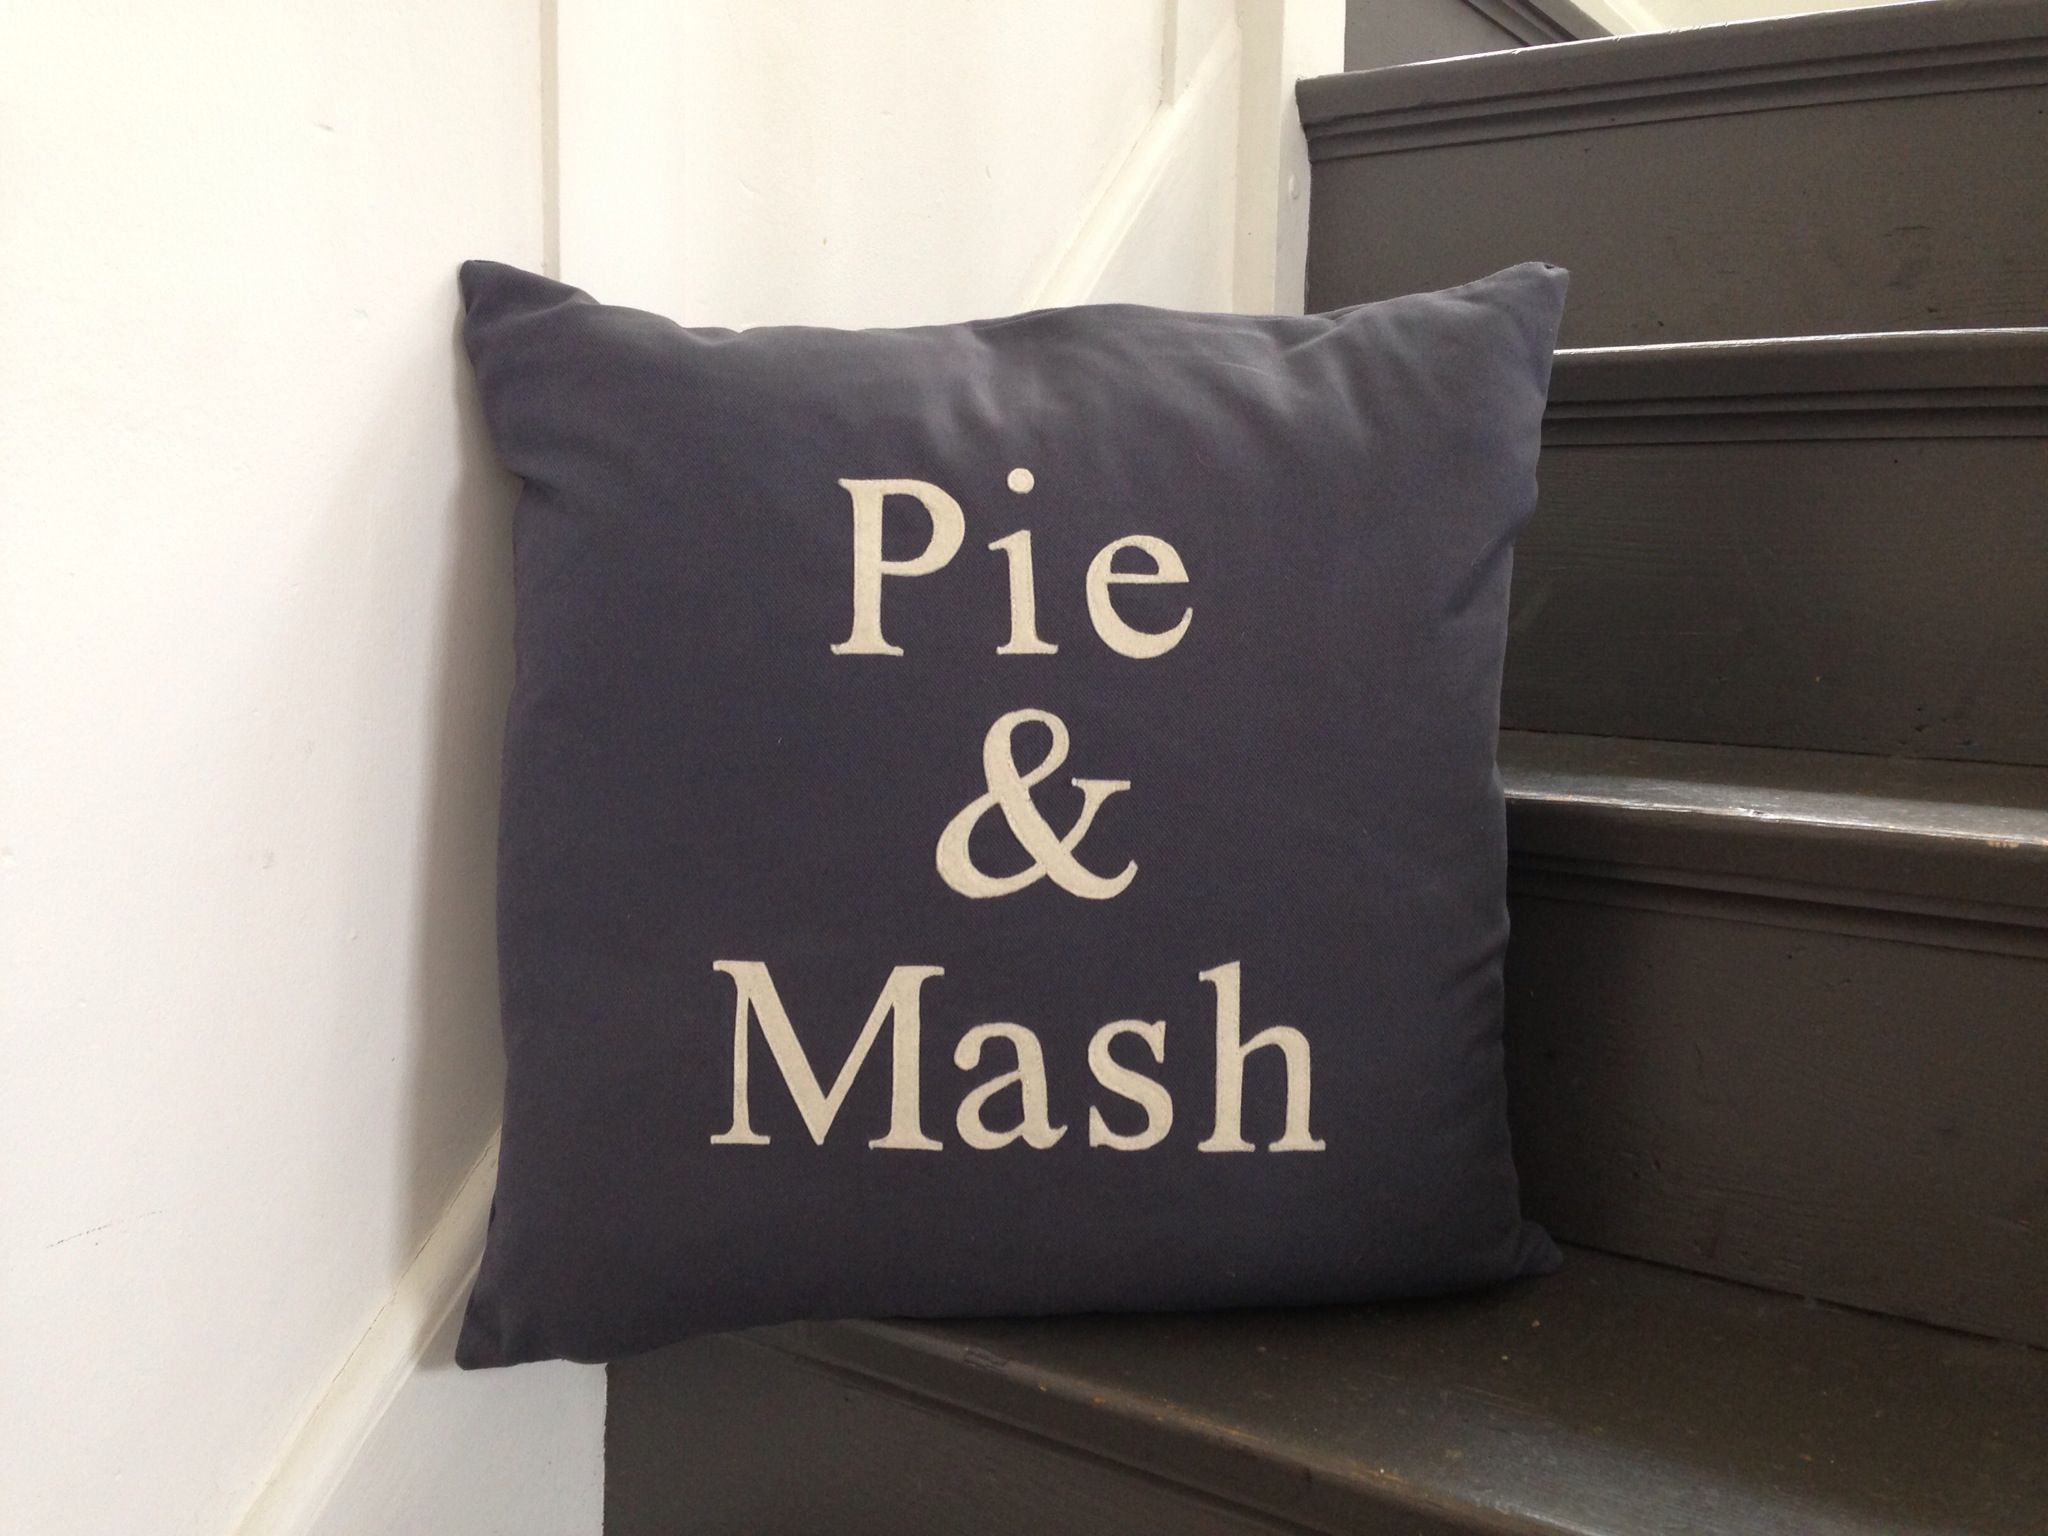 Pie u mash cushion in grey cotton drill of little consequence